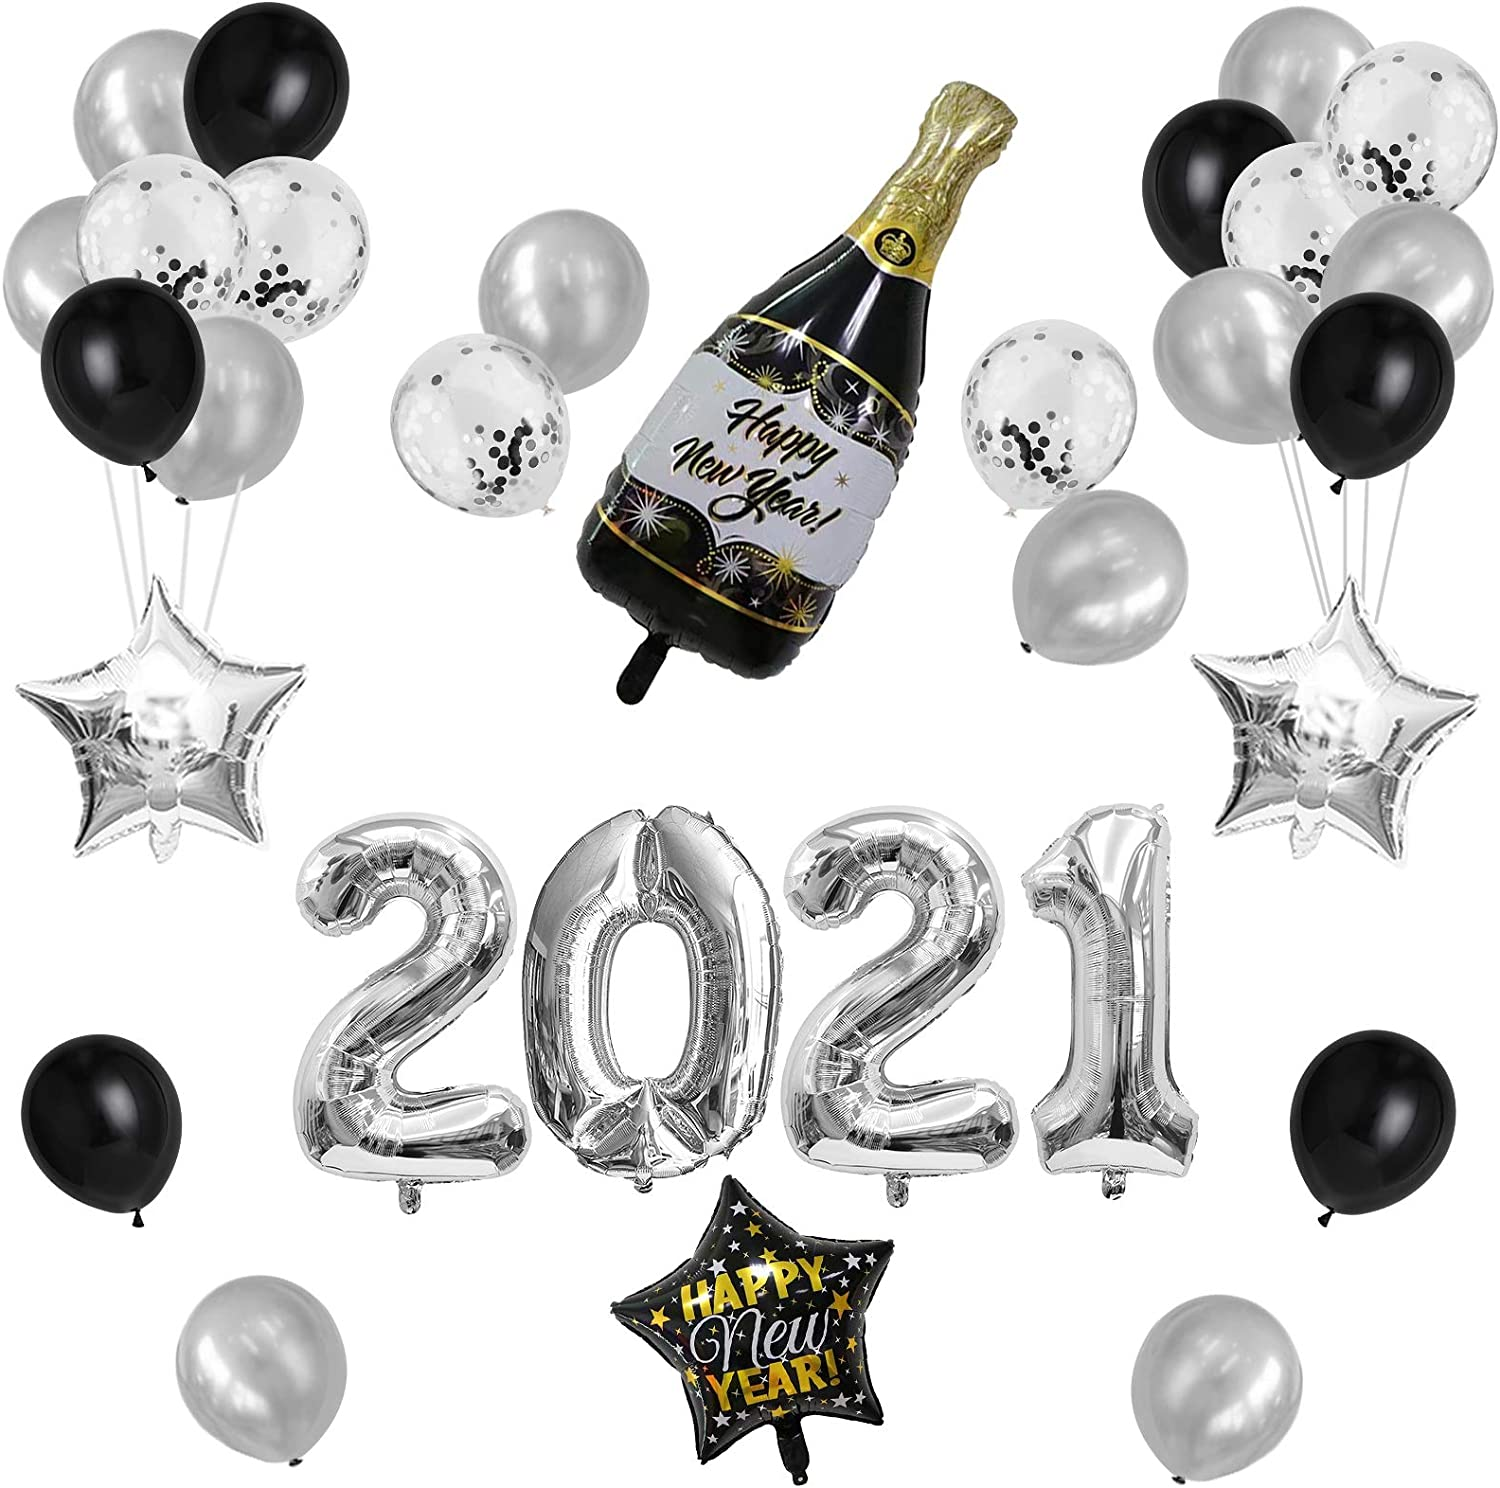 GeeRic New Year Balloons 2021 New Year Decorations 2021 Set Decorations 2021 Giant Number Balloon Birthday Latex Colorful Balloons Set for Happy New Year Party Decorations Silver